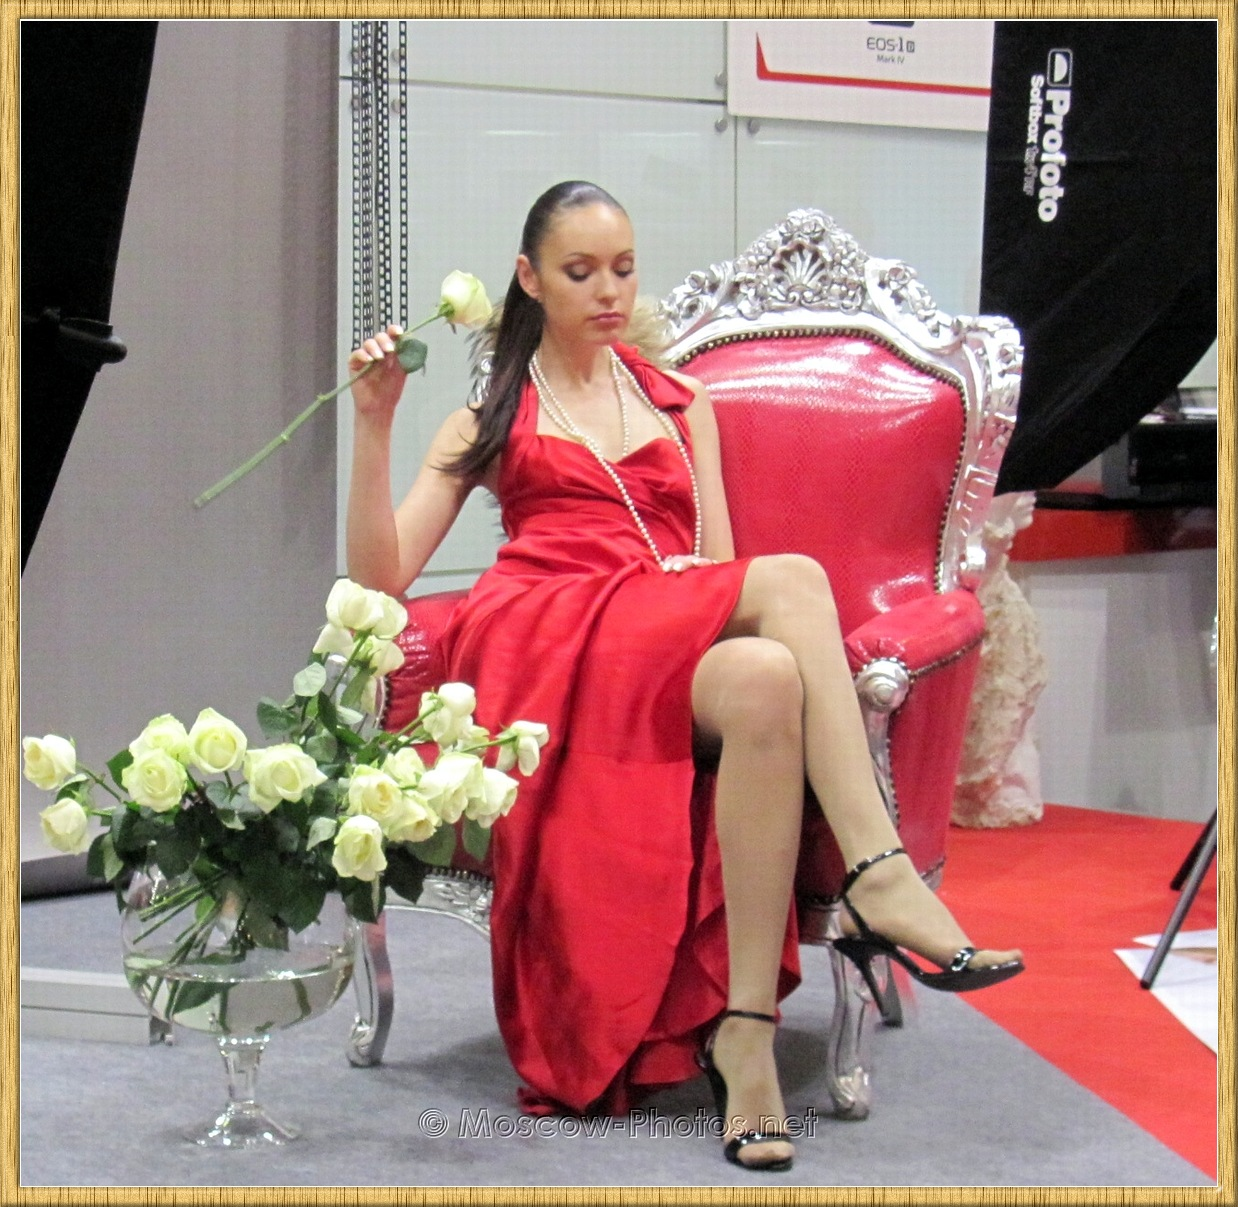 Long Haired Moscow Model In Red Dress Sitting On A Chair